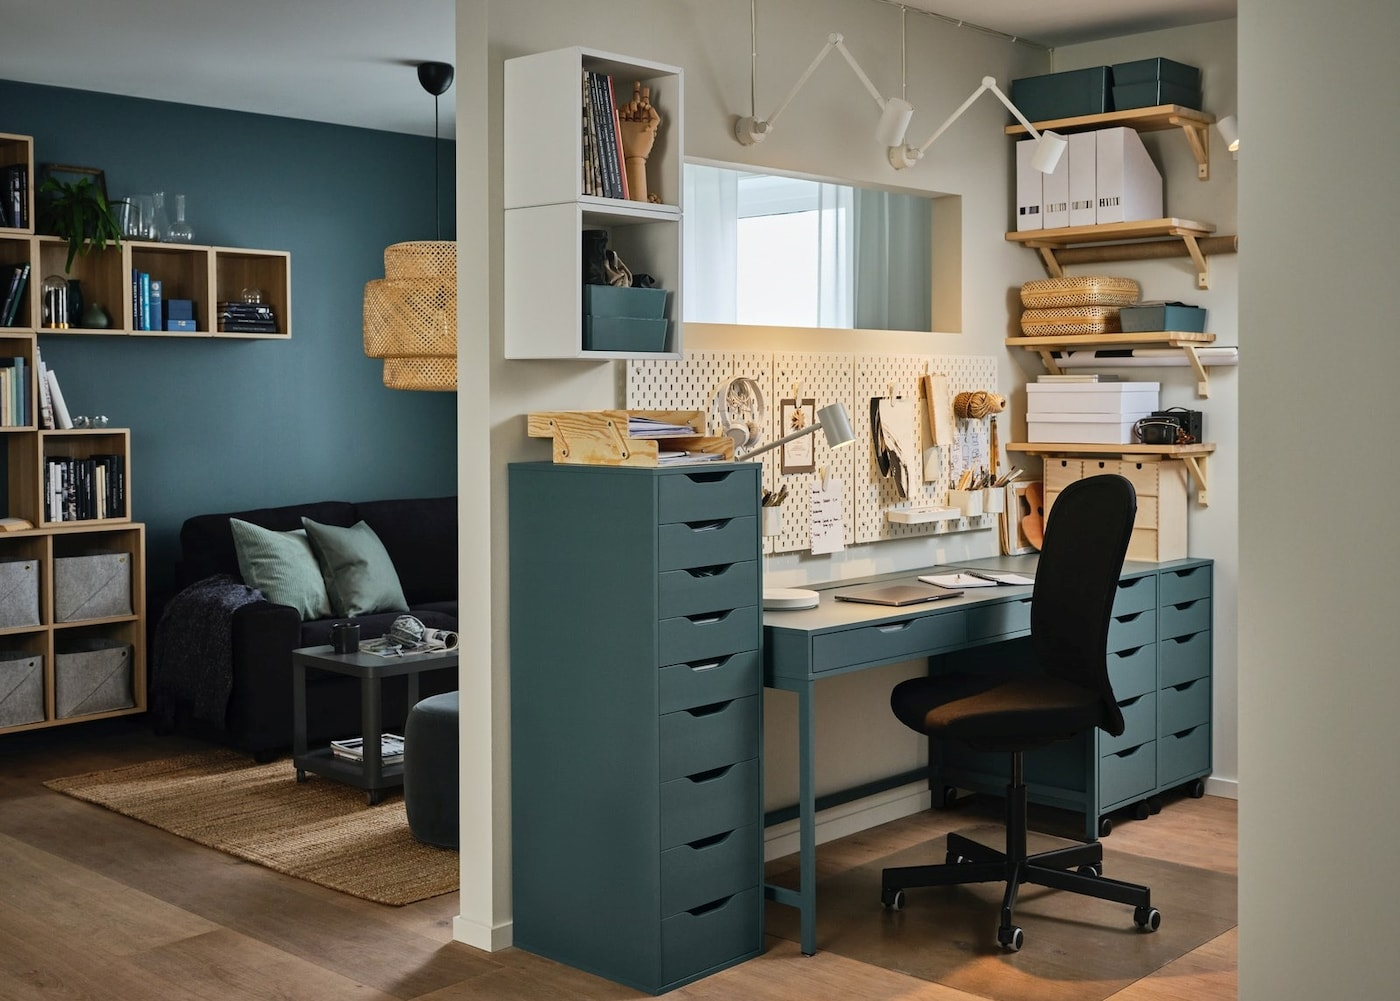 A wall dividing a living room and a workspace at home, grey-turquoise desk and drawer units, a black office chair.